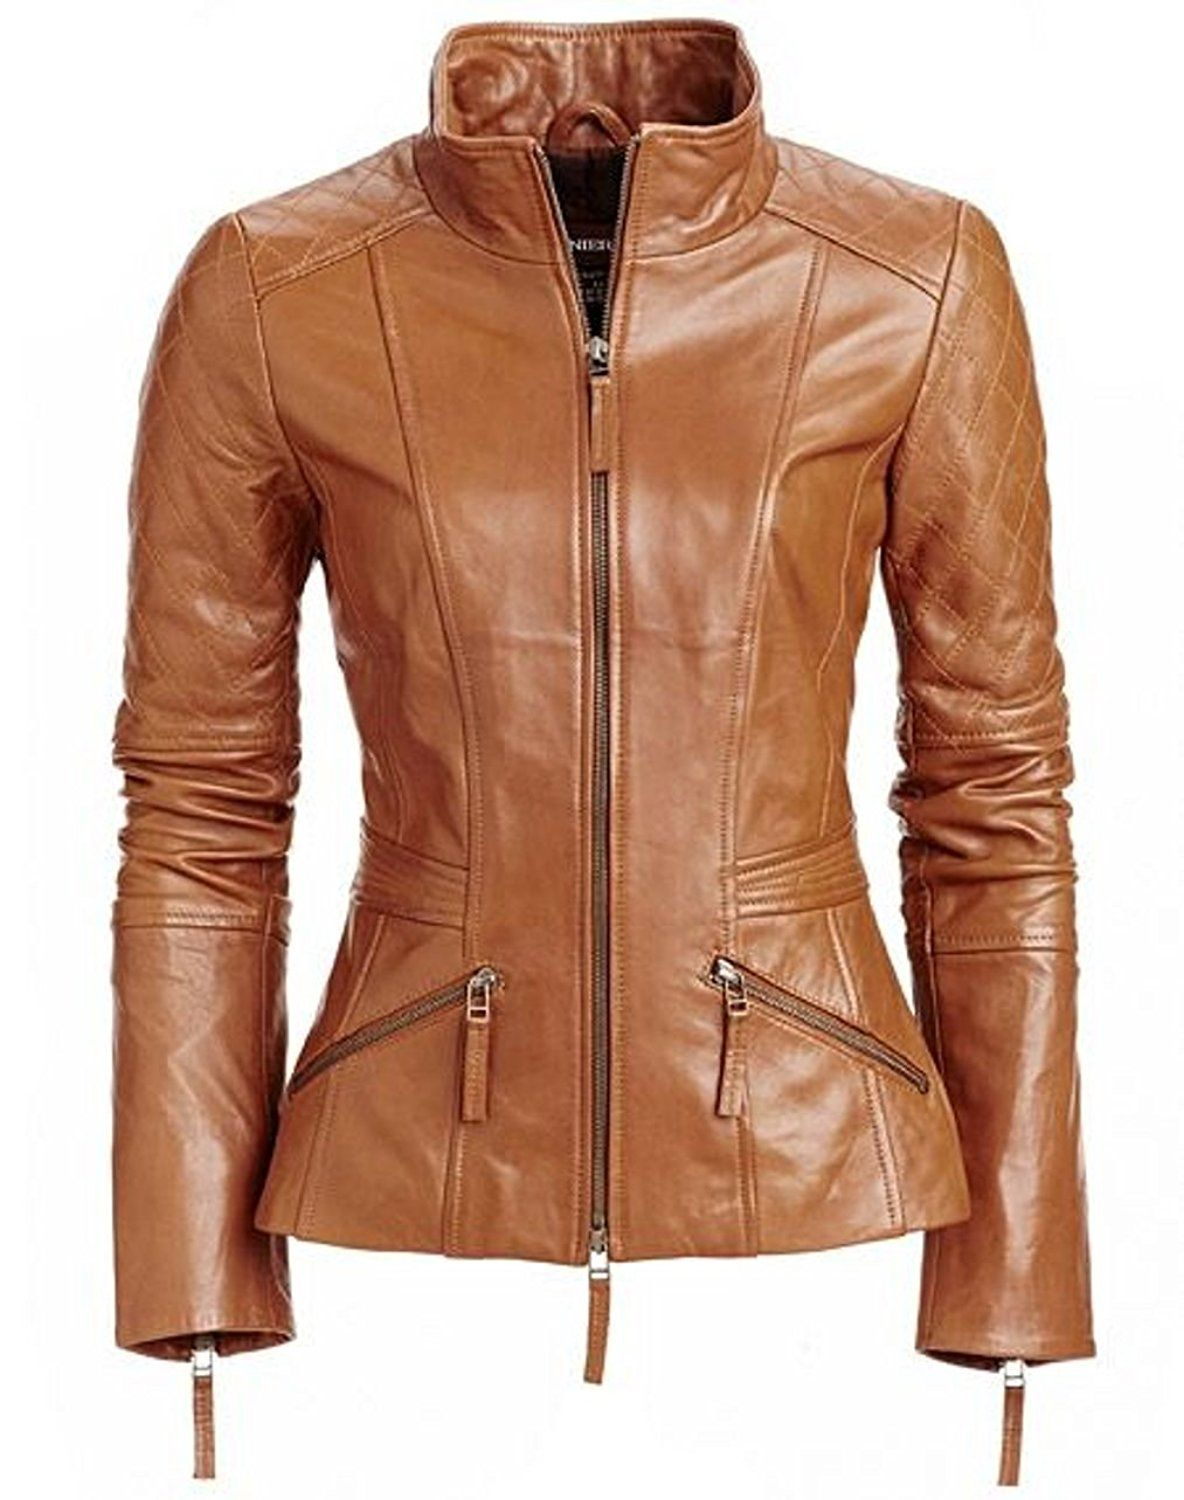 mejor selección fa745 29d22 World Of Leather Women's Biker Moto Leather Jacket Cognac ...